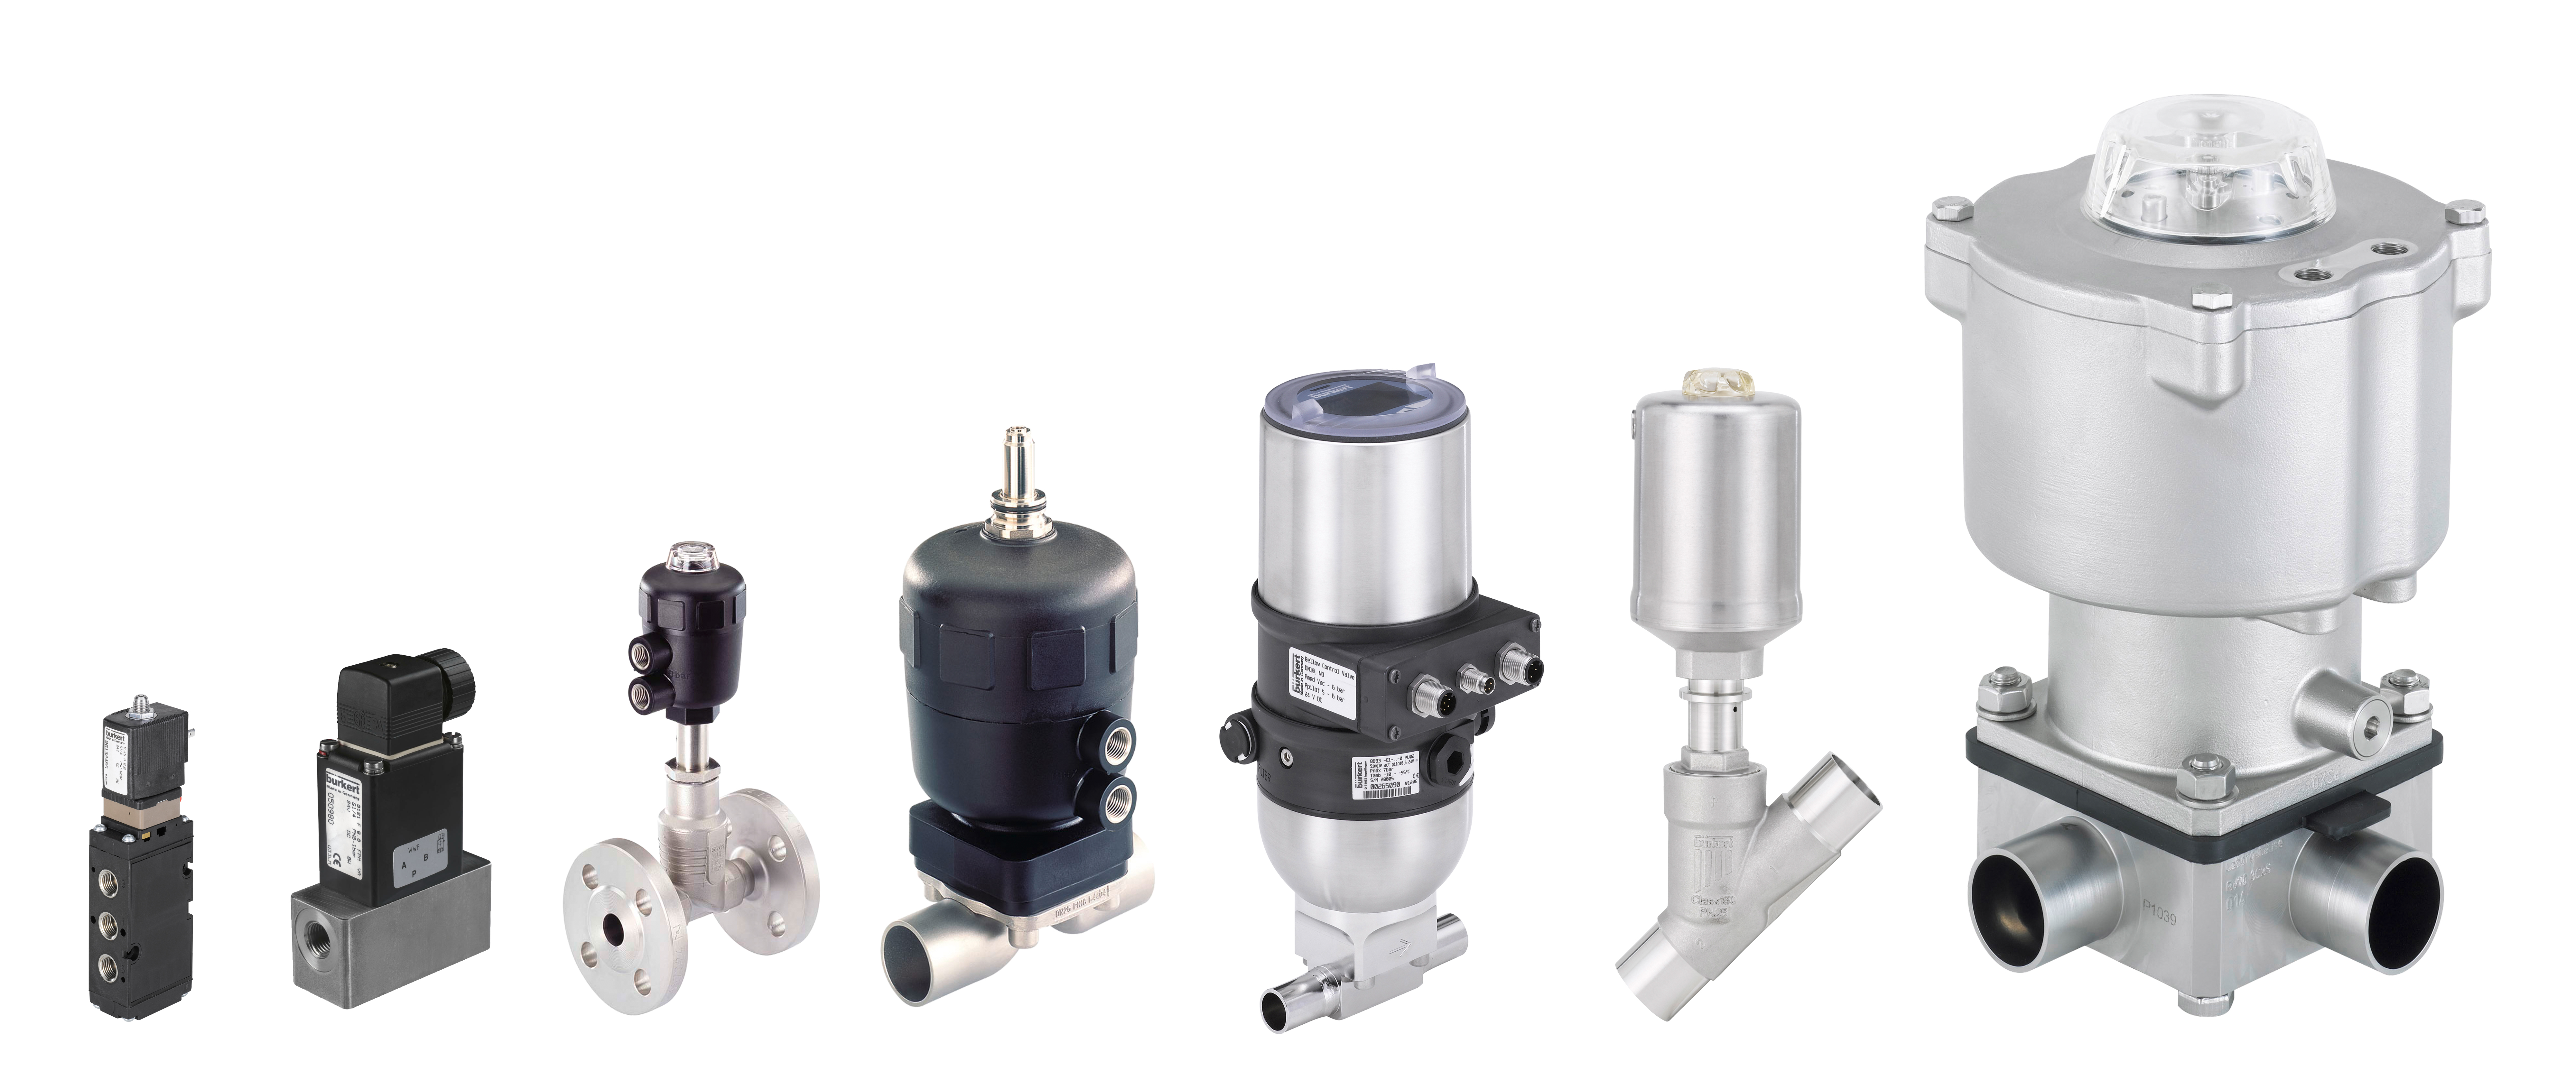 Finding the right control valve solution